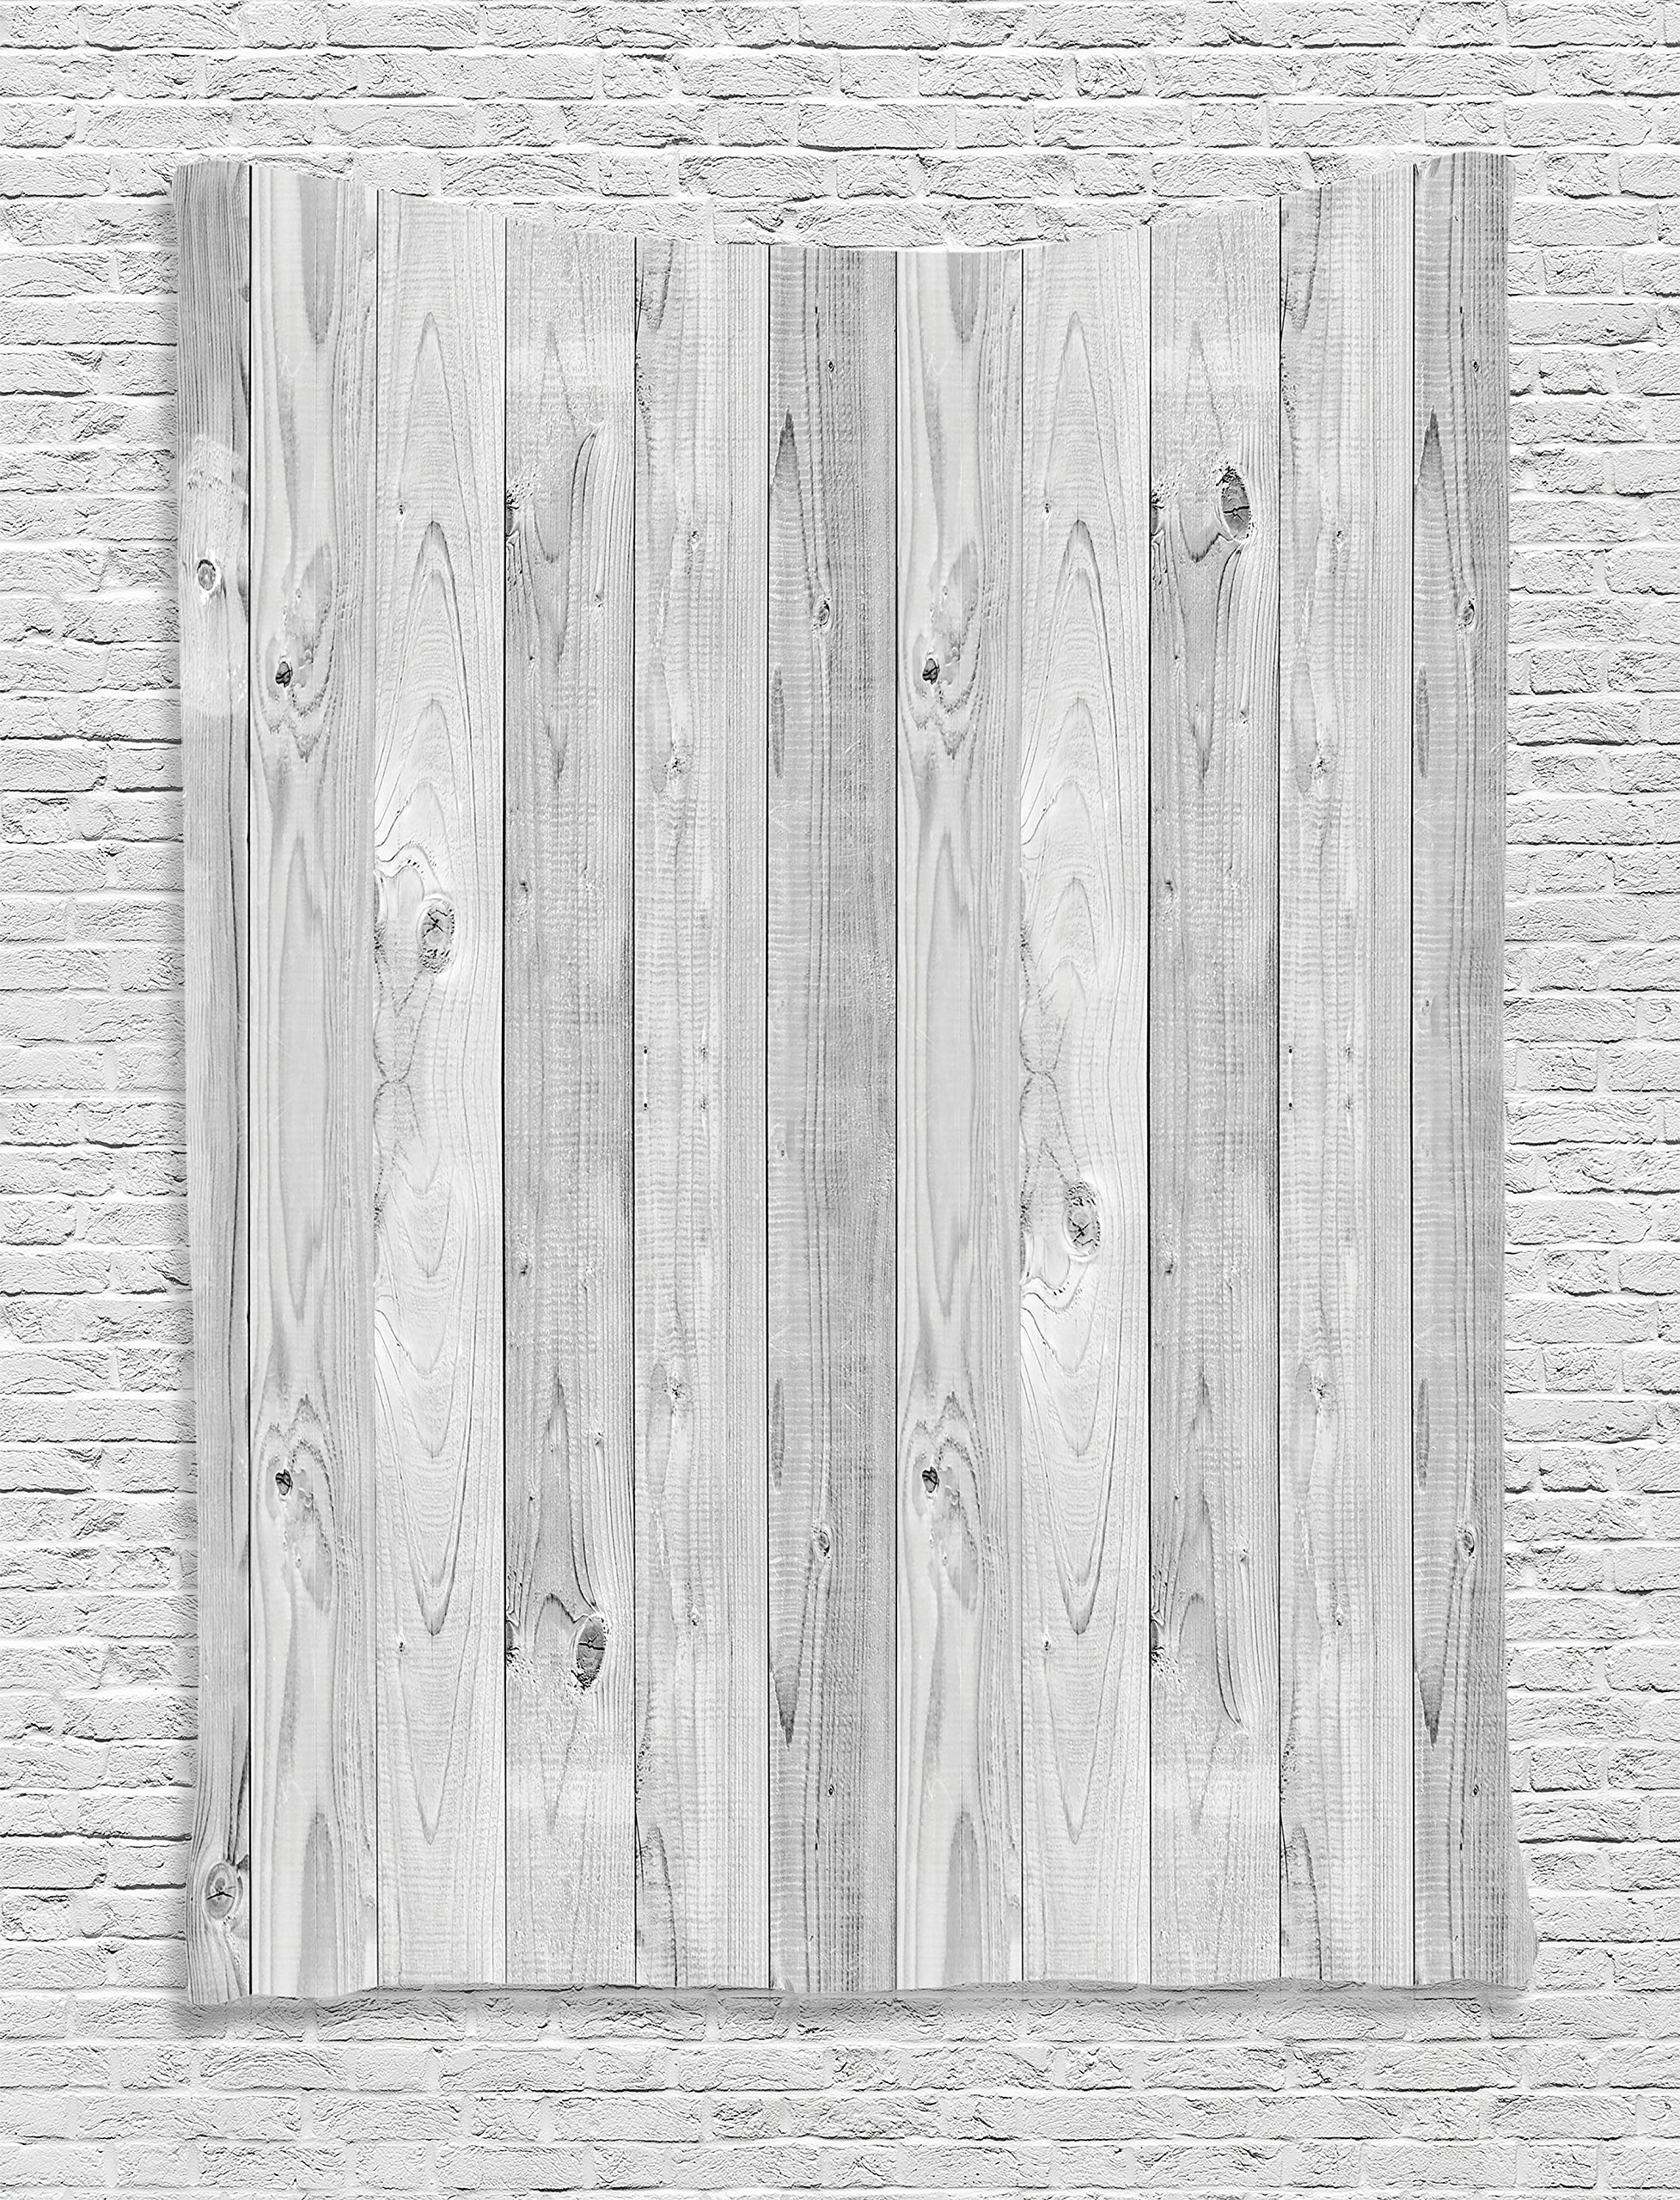 Ambesonne Grey Decor Collection, Picture of Smooth Oak Wood Texture in Old Fashion Retro Style Horizontal Nature Design Home Print, Bedroom Living Room Dorm Wall Hanging Tapestry, Gray by Ambesonne (Image #1)